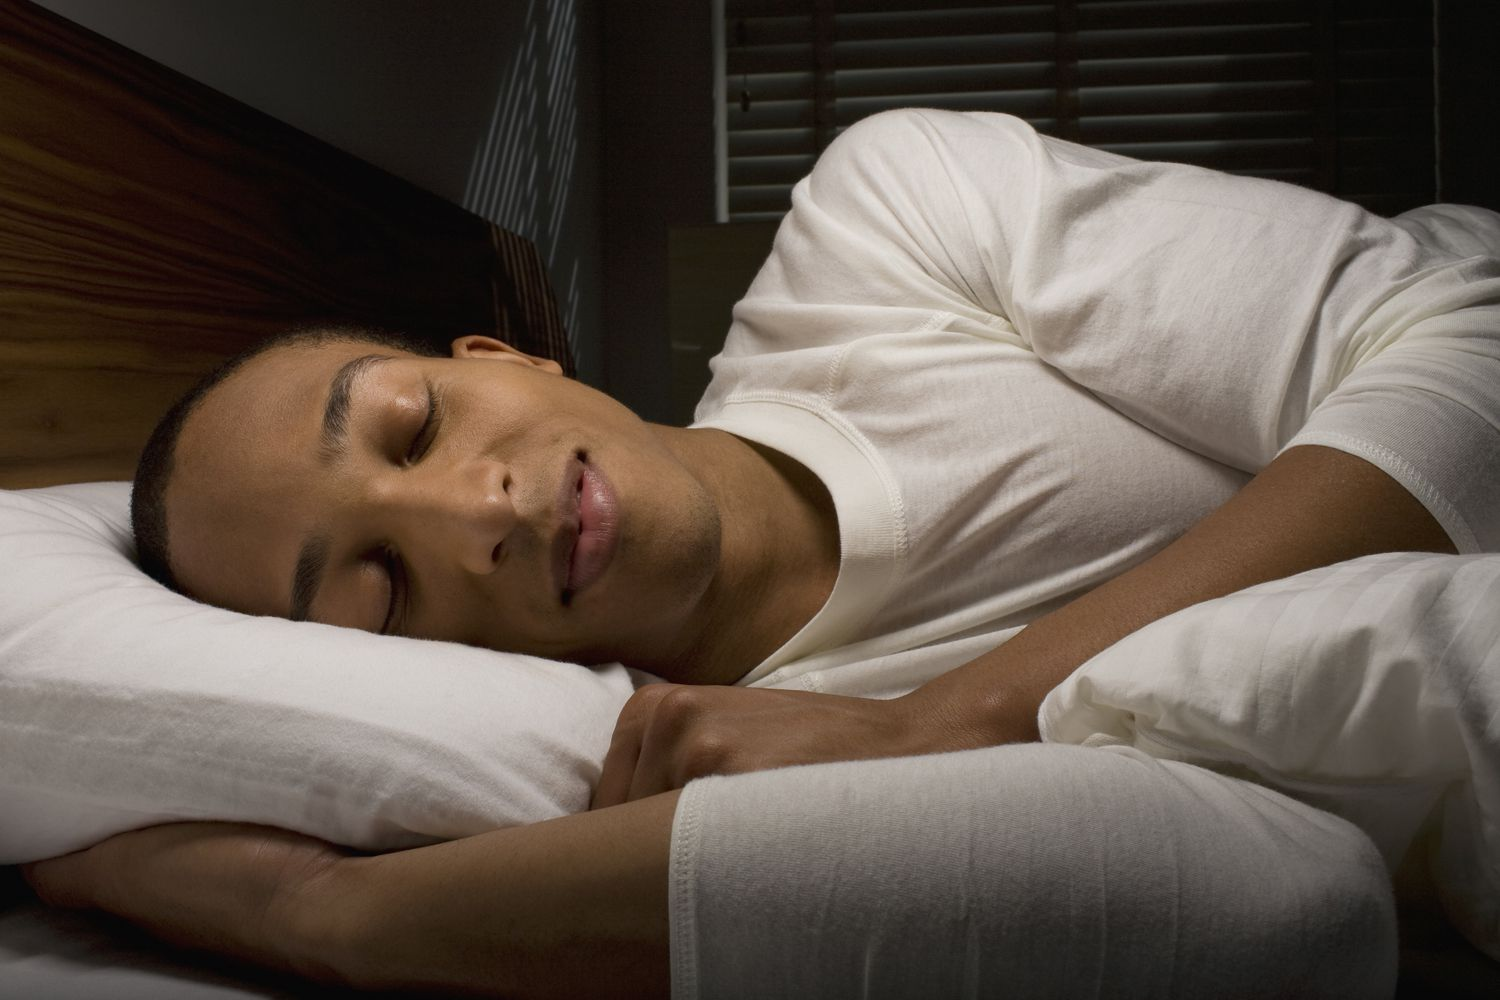 A person sleeping in bed while smiling